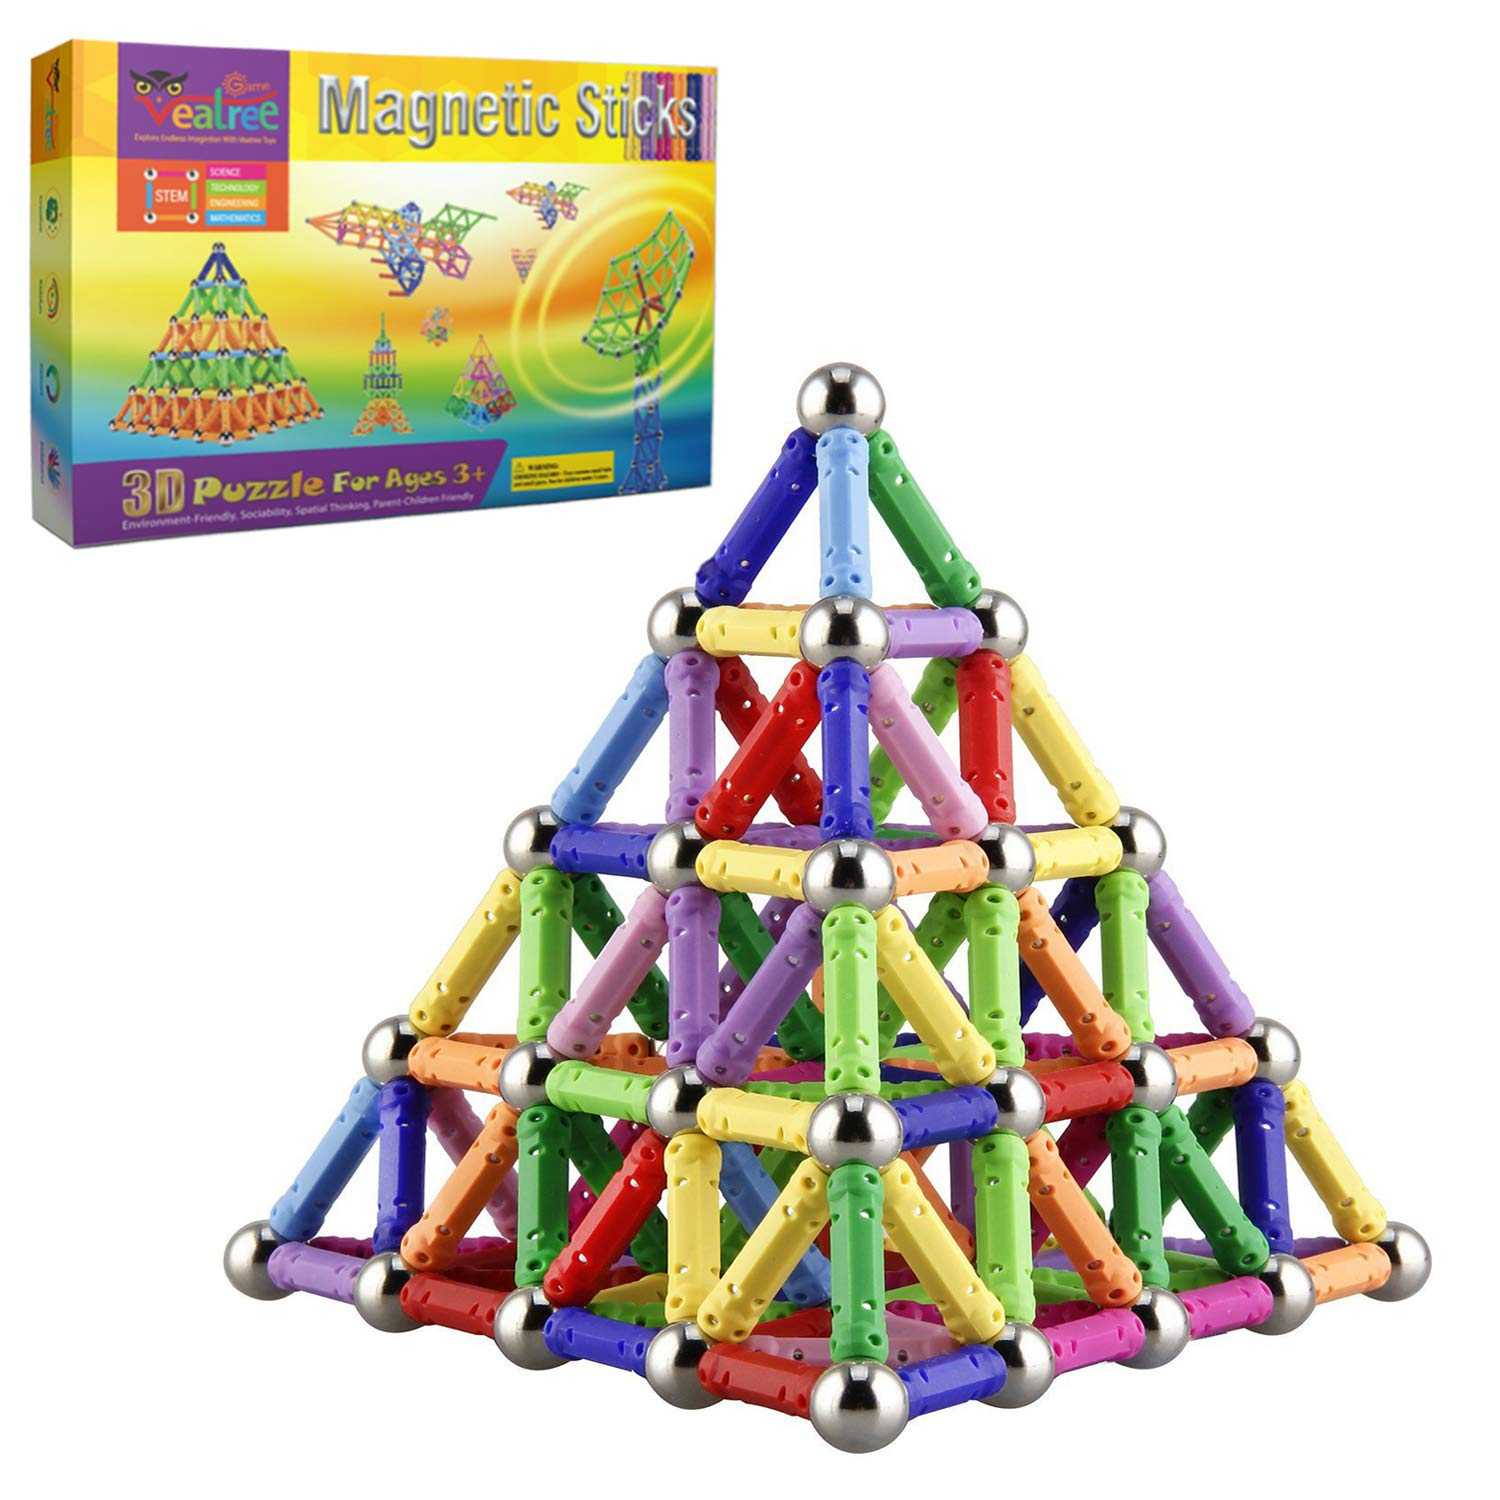 Veatree 160 Pcs Magnetic Building Sticks Blocks Toys, Magnet Educational Toys Magnetic Blocks Sticks Stacking Toys Set for Kids and Adult, Non-Toxic Building Toy 3D Puzzle with Storage Bag